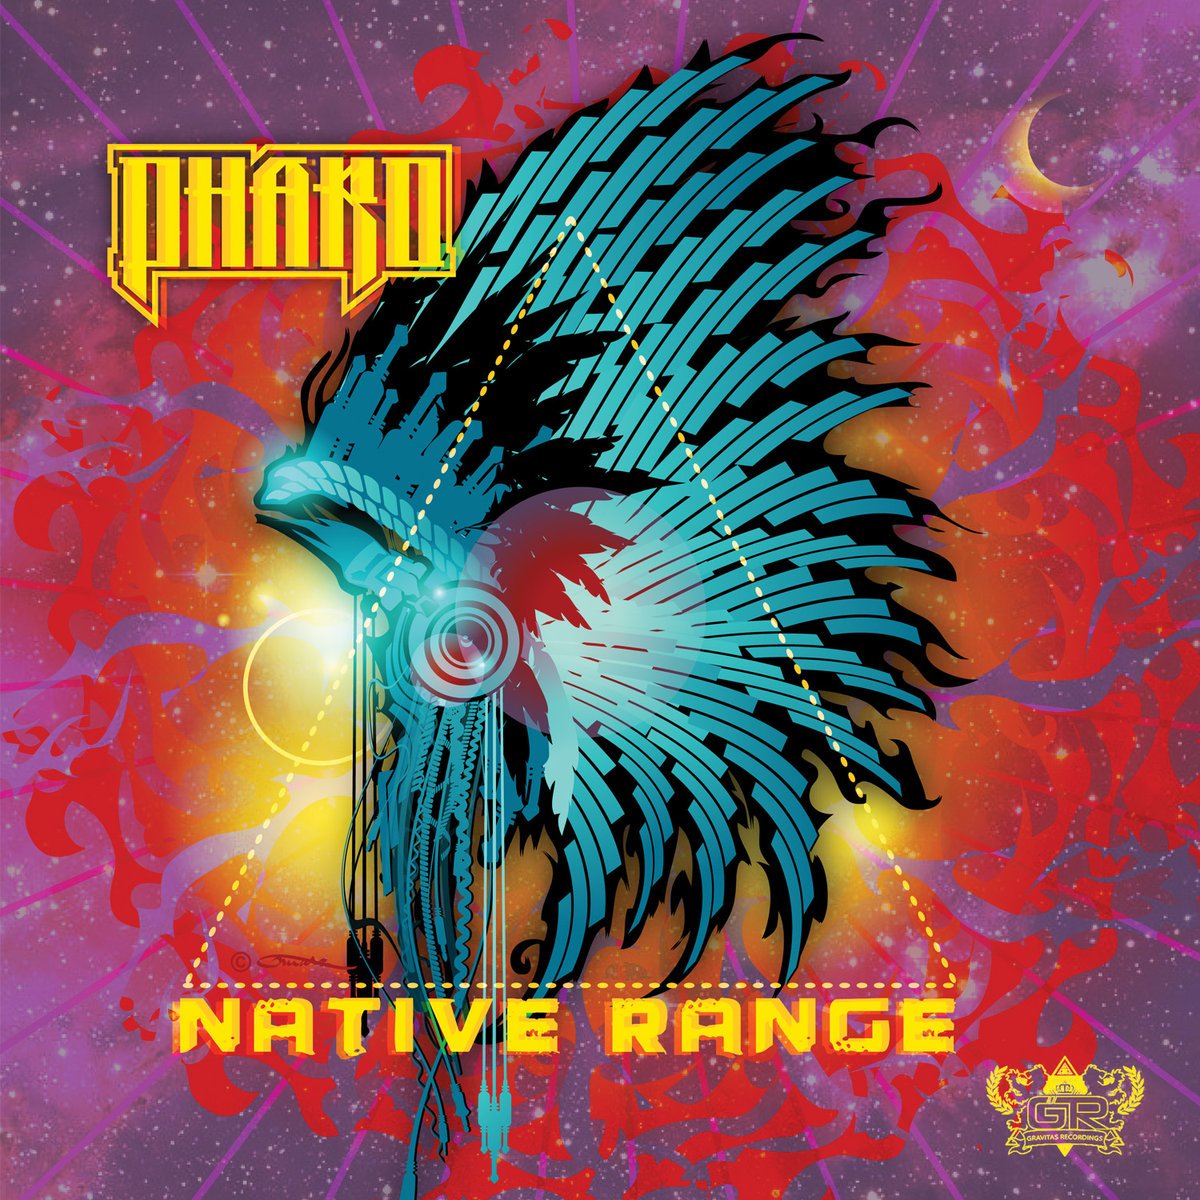 Pharo - Dub Deals @ 'Native Range' album (Austin)